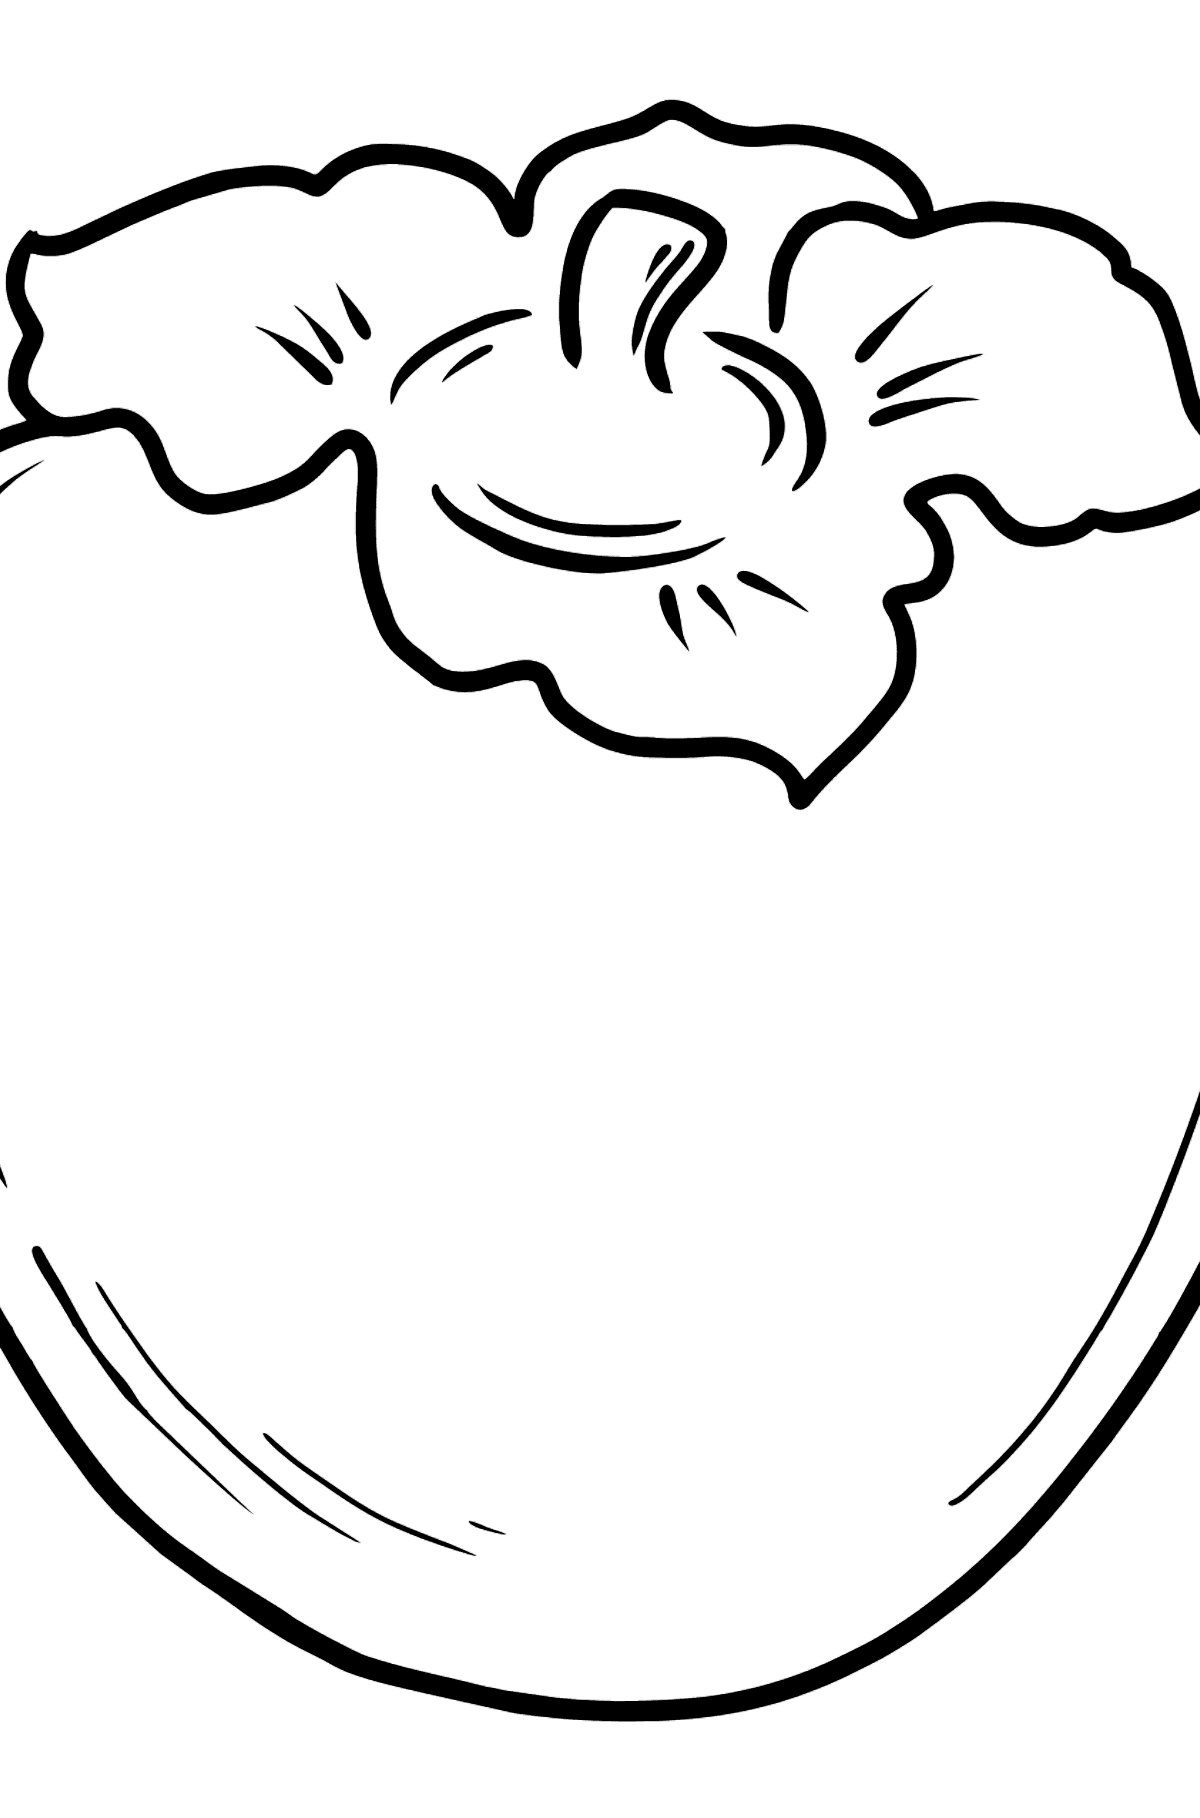 Persimmon coloring page - Coloring Pages for Kids